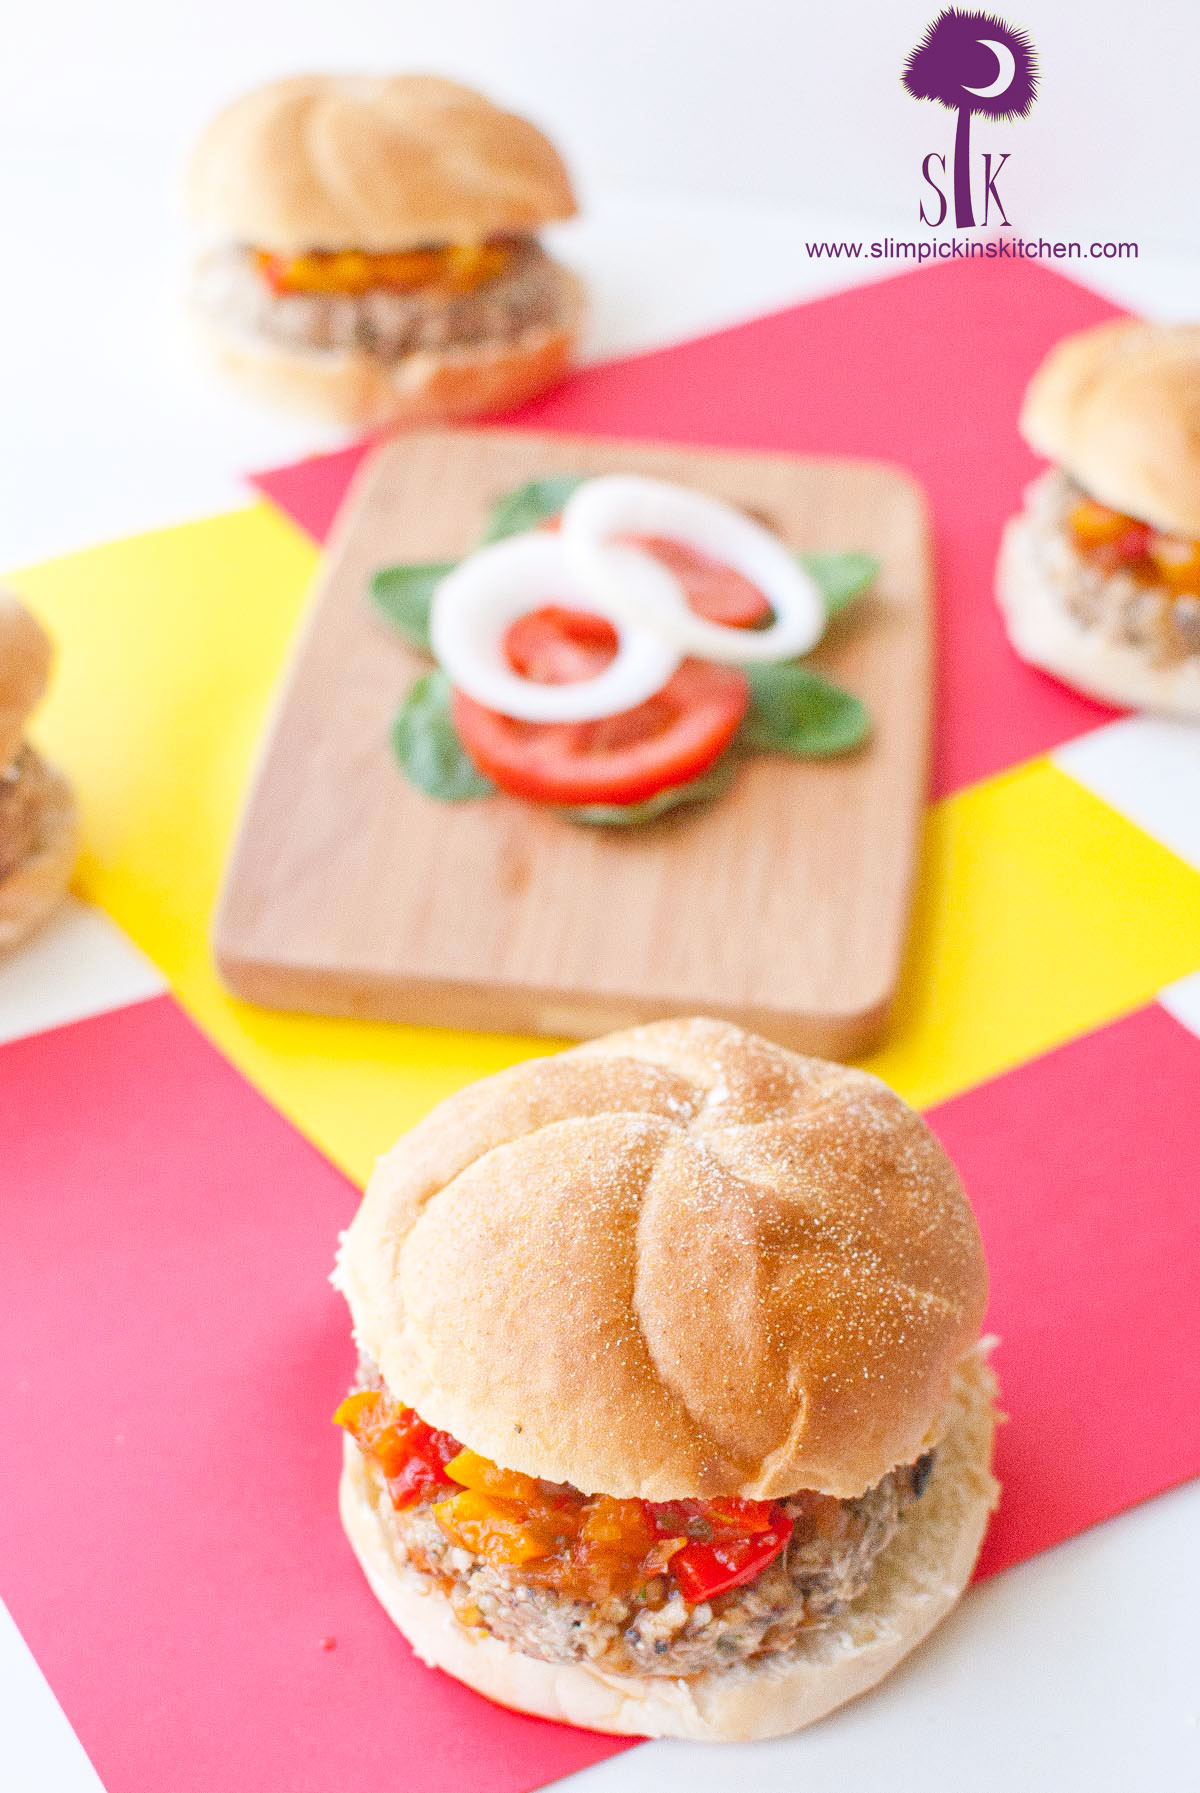 Gluten-Free-Black-Eyed-Pea-Burgers-with-a-Sweet-Chili-Pepper-Chutney-1